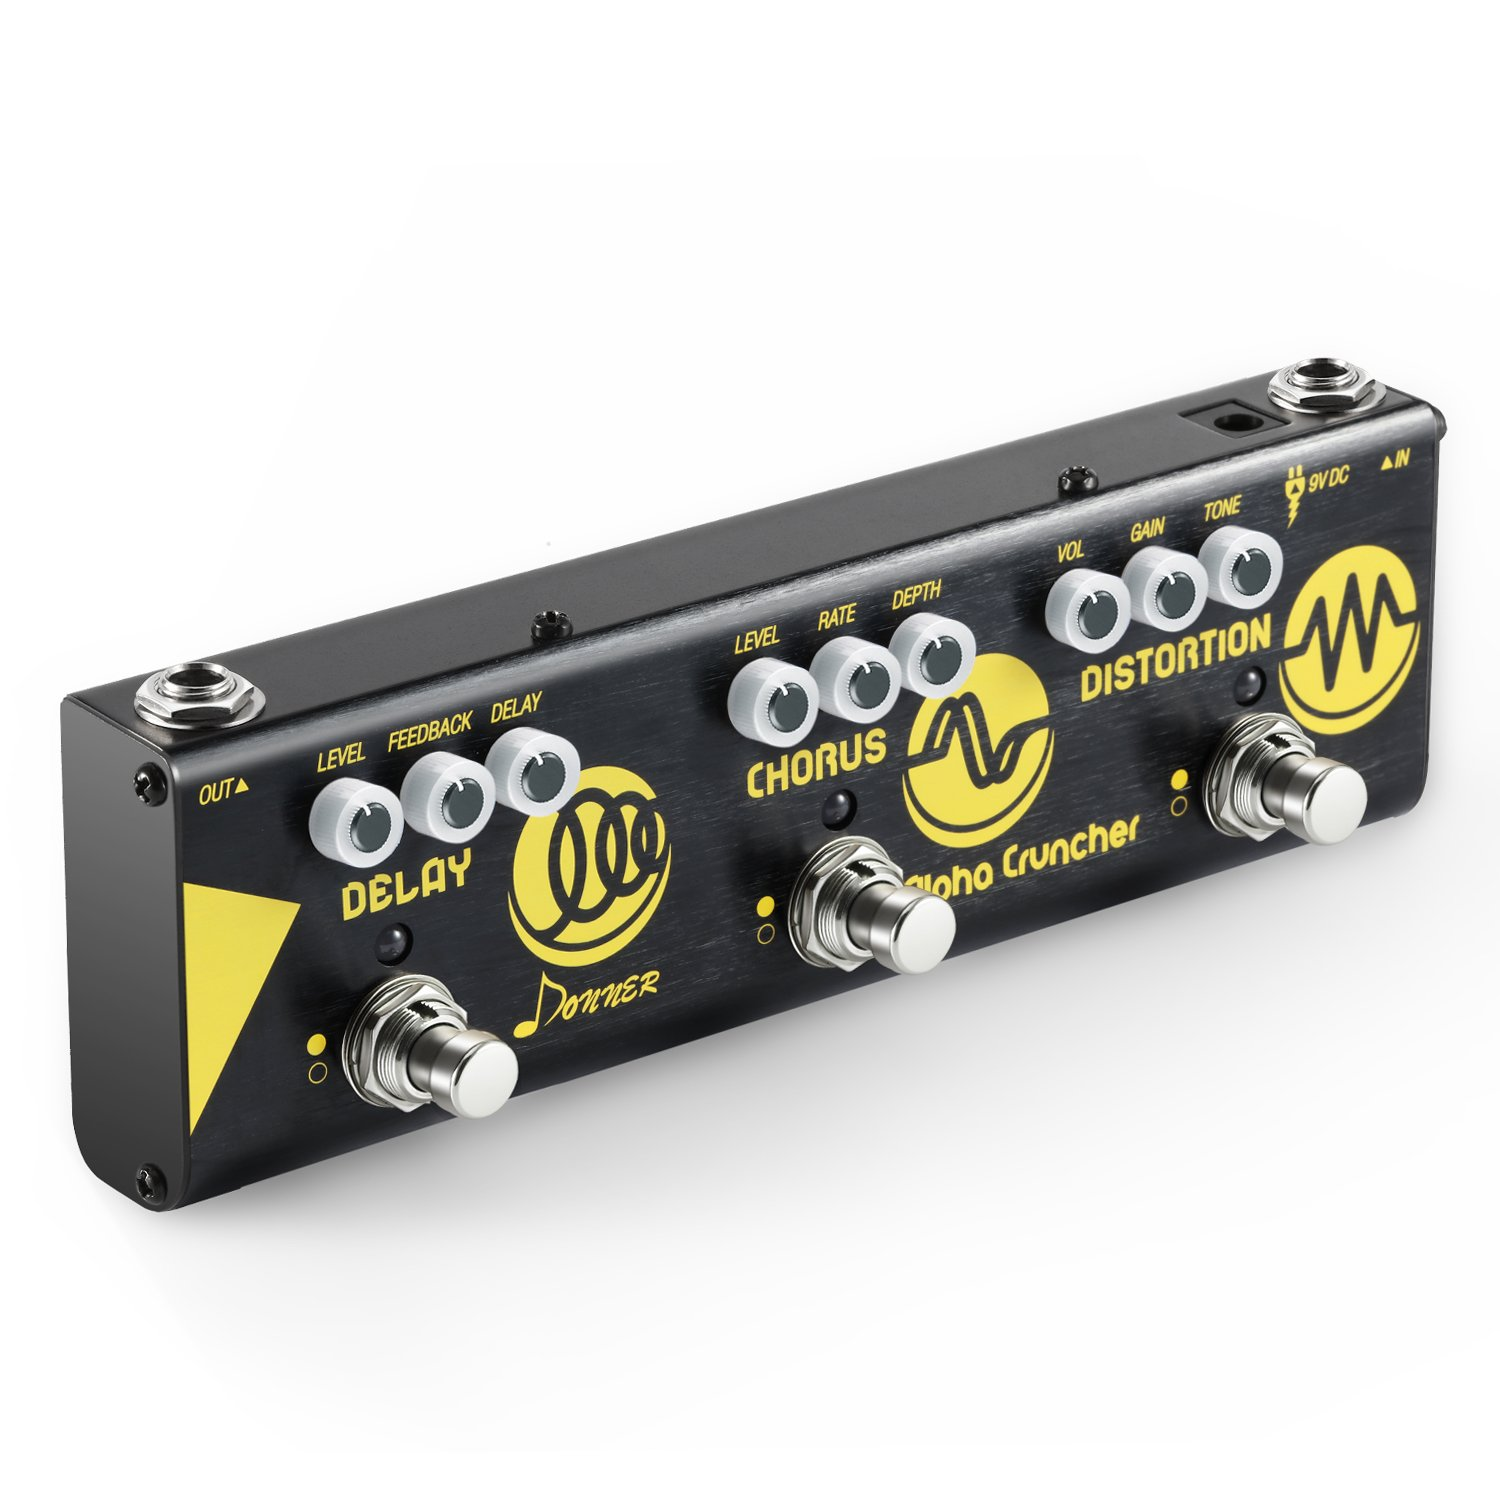 Donner Multi Guitar Effect Pedal Alpha Cruncher 3 Type Effects Delay Chorus Distortion Pedal with Adapter by Donner